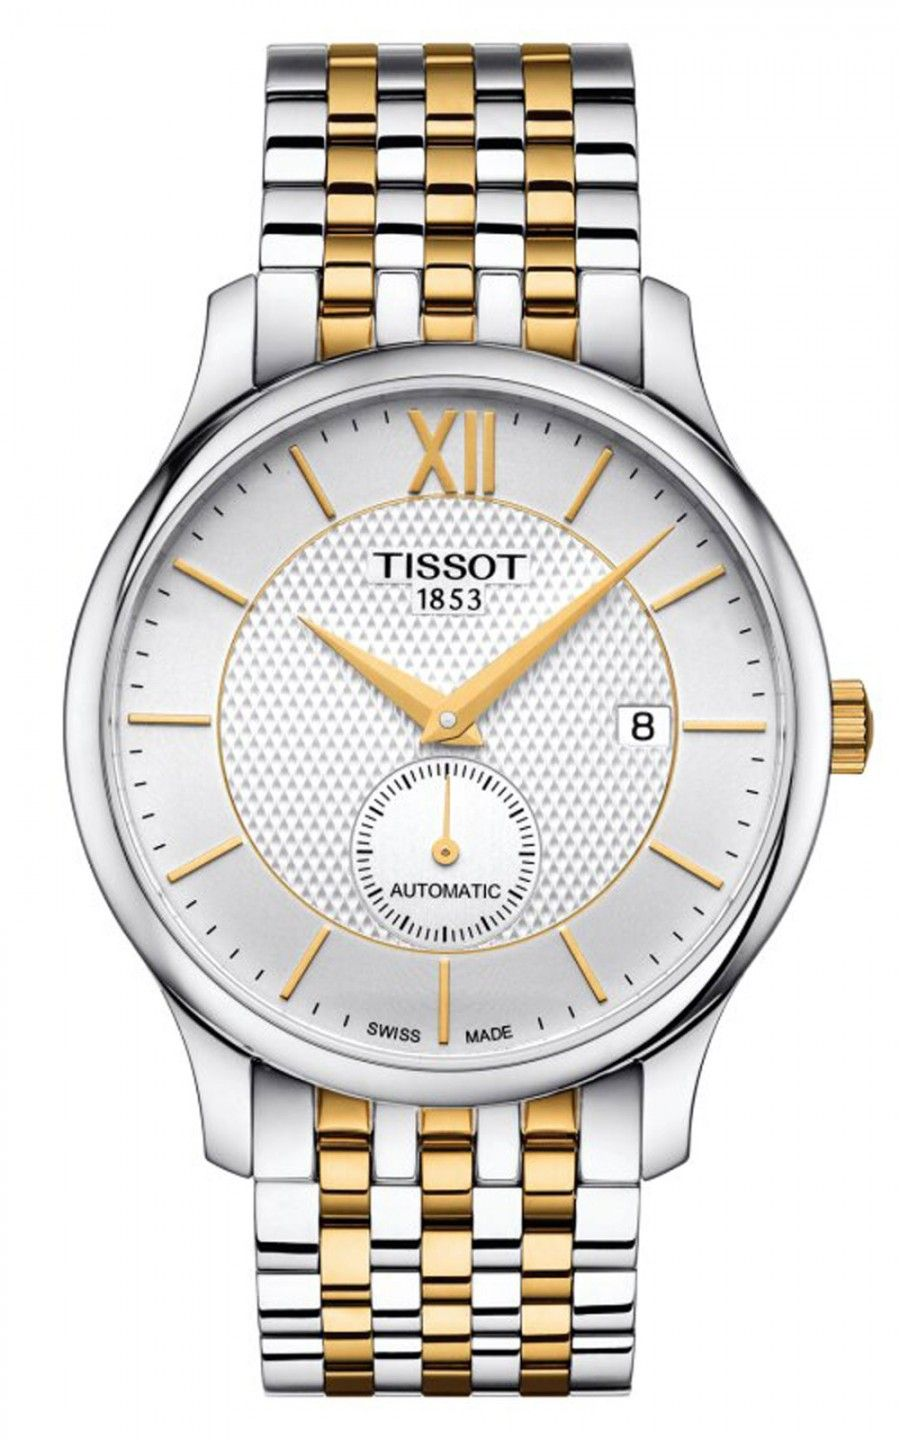 Hình Đồng hồ Tissot Tradition Automatic Small Second, 40mm T0634282203800